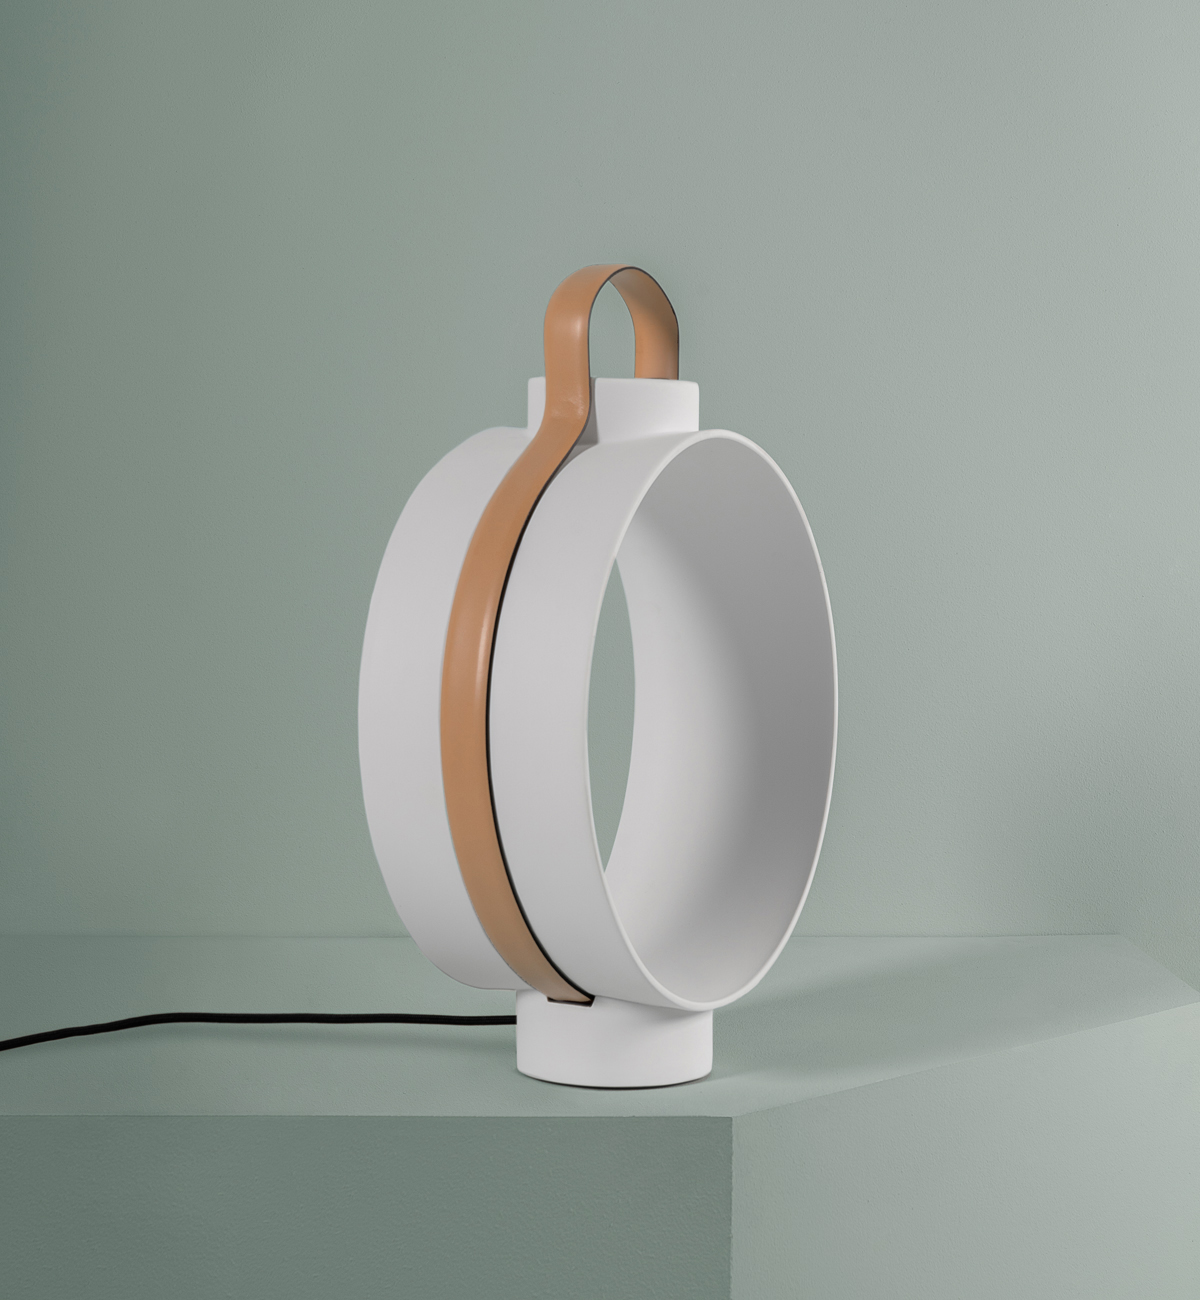 Dante - Goods and Bads Nightingale porcelain lantern by Christophe de la Fontaine white beige